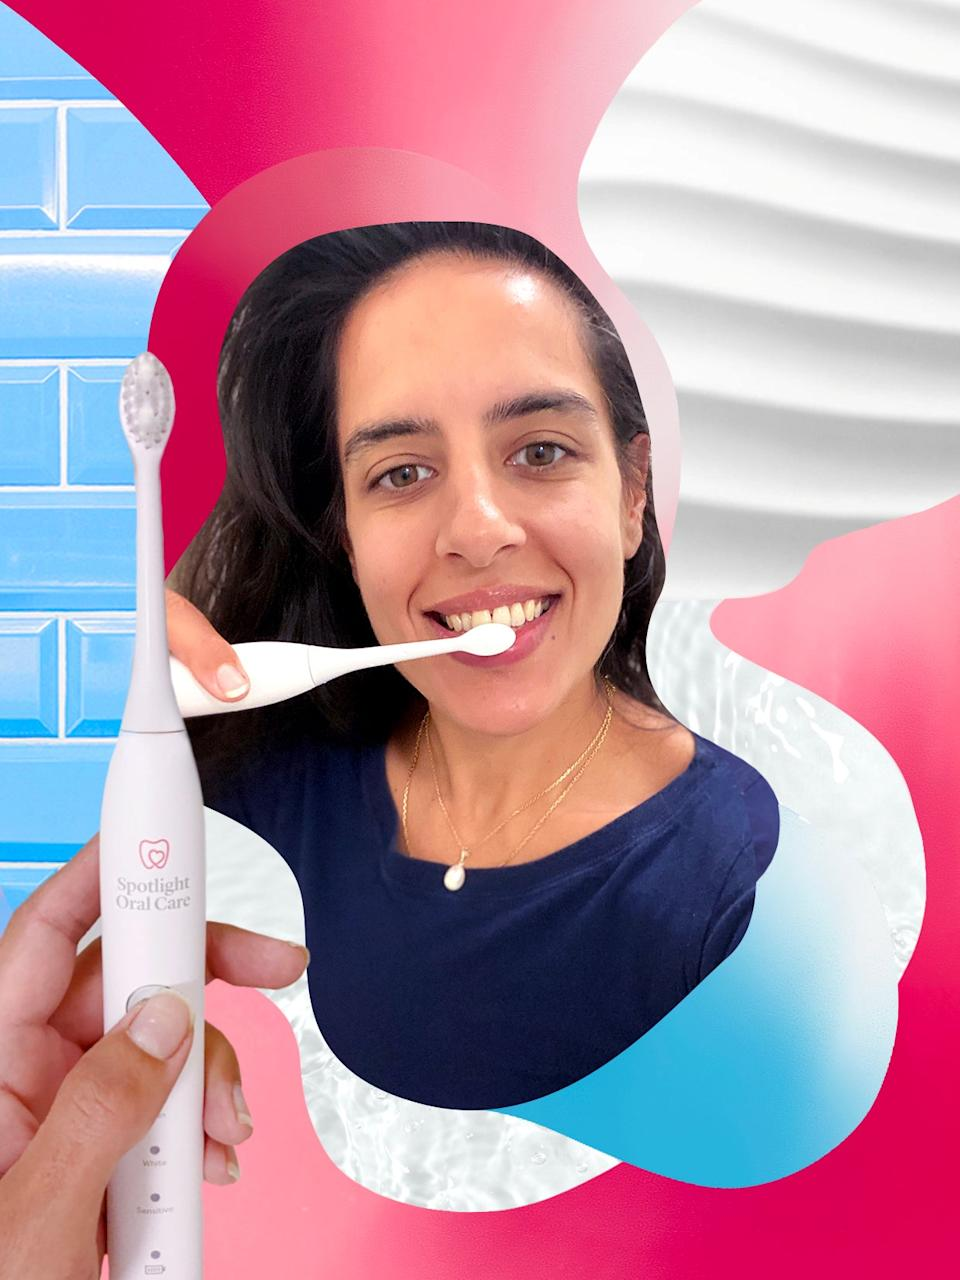 """<strong>Day Three Tip: <em>""""Keep your mouth closed when brushing to avoid toothpaste clean-ups later!""""</em></strong><br><br>The Sonic Toothbrush is a big improvement on my usual oral care routine: I'm cleaning more thoroughly and I can actually feel the difference on my teeth. My breath seems fresher too, a win-win for everyone. It did take a few days to get used to keeping my mouth closed while brushing, though (my mirror is sporting some artistic toothpaste splatters!).<br><br>The brush was fully charged on day one and thanks to its long-life battery, I'm not worried about having to put it on charge every night. I'm going away this weekend so will just pop the brush in the compact travel case – much more hygienic than my usual habit of chucking the brush in with my toiletries at the last minute.<br><br>I've been checking out more of Spotlight Oral Care's products online and am intrigued to try their Teeth Whitening Strips as I've never used whitening products before. Their entire range, from mouthwash to toothpaste, is palm oil-free, cruelty-free and toxin-free. Don't mind me while I add a couple of things to my basket…<br><br><em>Want to improve your oral care routine with the Spotlight Oral Care Sonic Toothbrush? Enjoy 25% off all <a href=""""http://oralcare.tv/Refinery29"""" rel=""""nofollow noopener"""" target=""""_blank"""" data-ylk=""""slk:Spotlight Oral Care products"""" class=""""link rapid-noclick-resp"""">Spotlight Oral Care products</a> on their site, with our Refinery29 offer code</em>: REFINERY25<br><br><strong>Spotlight Oral Care</strong> Spotlight Sonic Toothbrush, $, available at <a href=""""https://oralcare.tv/Refinery29"""" rel=""""nofollow noopener"""" target=""""_blank"""" data-ylk=""""slk:Spotlight Oral Care"""" class=""""link rapid-noclick-resp"""">Spotlight Oral Care</a>"""